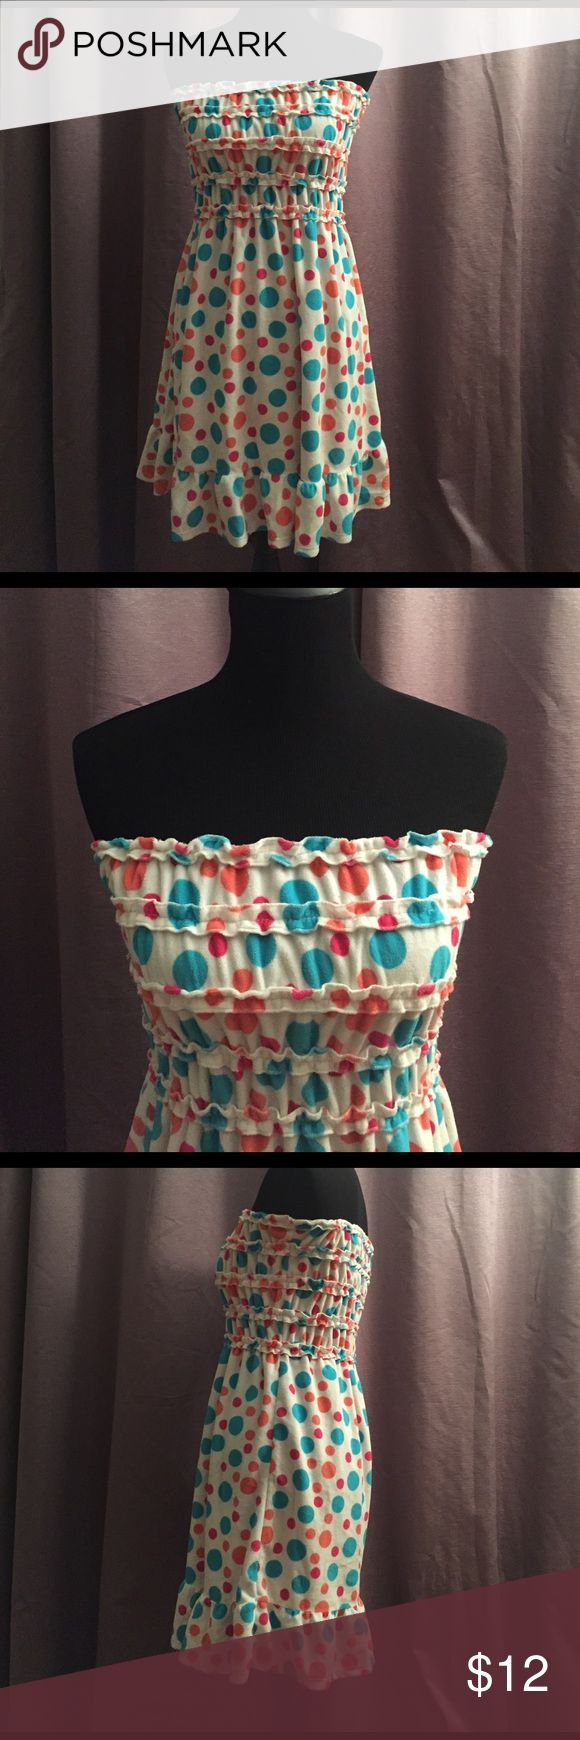 🥂SALE: $9🥂 Polka Dot Swimsuit Cover Up Super cute polka dot swimsuit cover up. White base with blue, peach and pink dots. Soft, terrycloth type material. In great condition. 🥂Sale pricing is firm. If you'd like to purchase, please submit $9 through the offer button and I will accept it. Charlotte Dresses